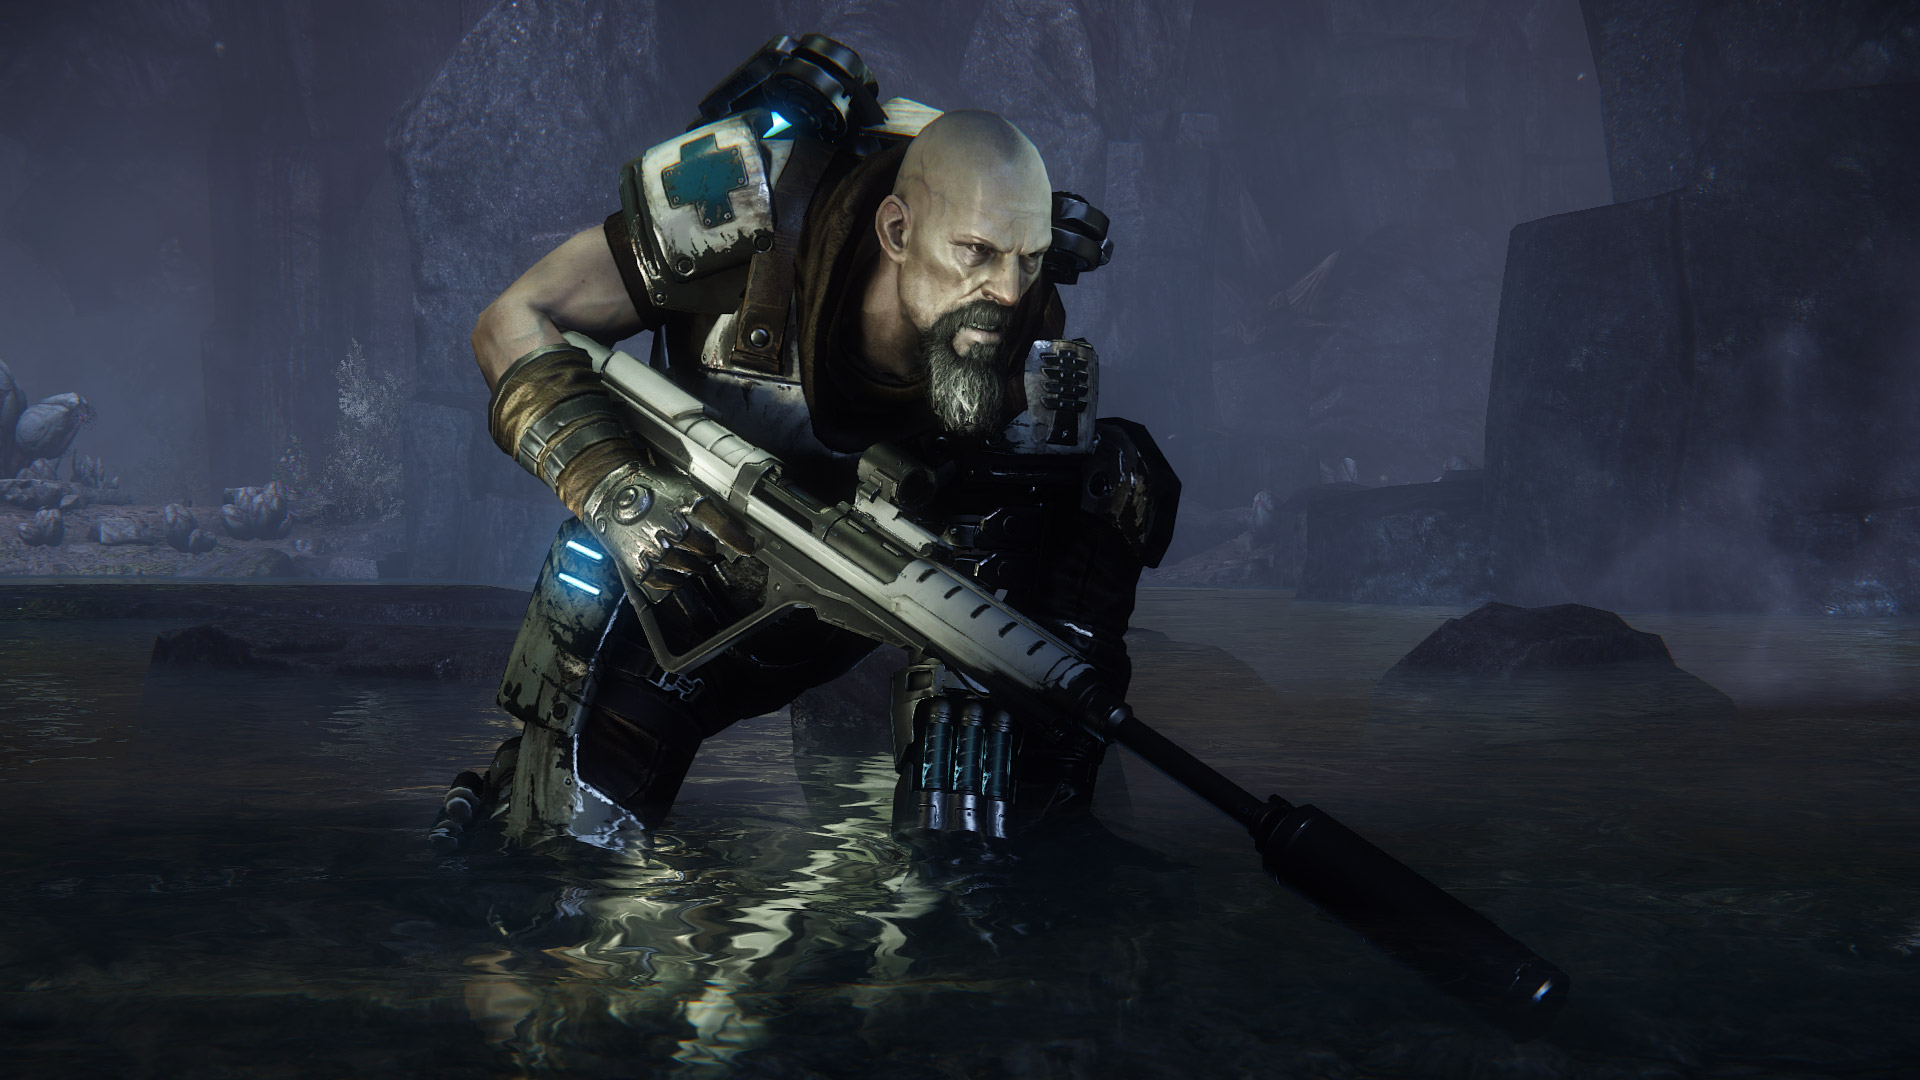 I had a terrible time playing Evolve, and now I can't wait to buy it